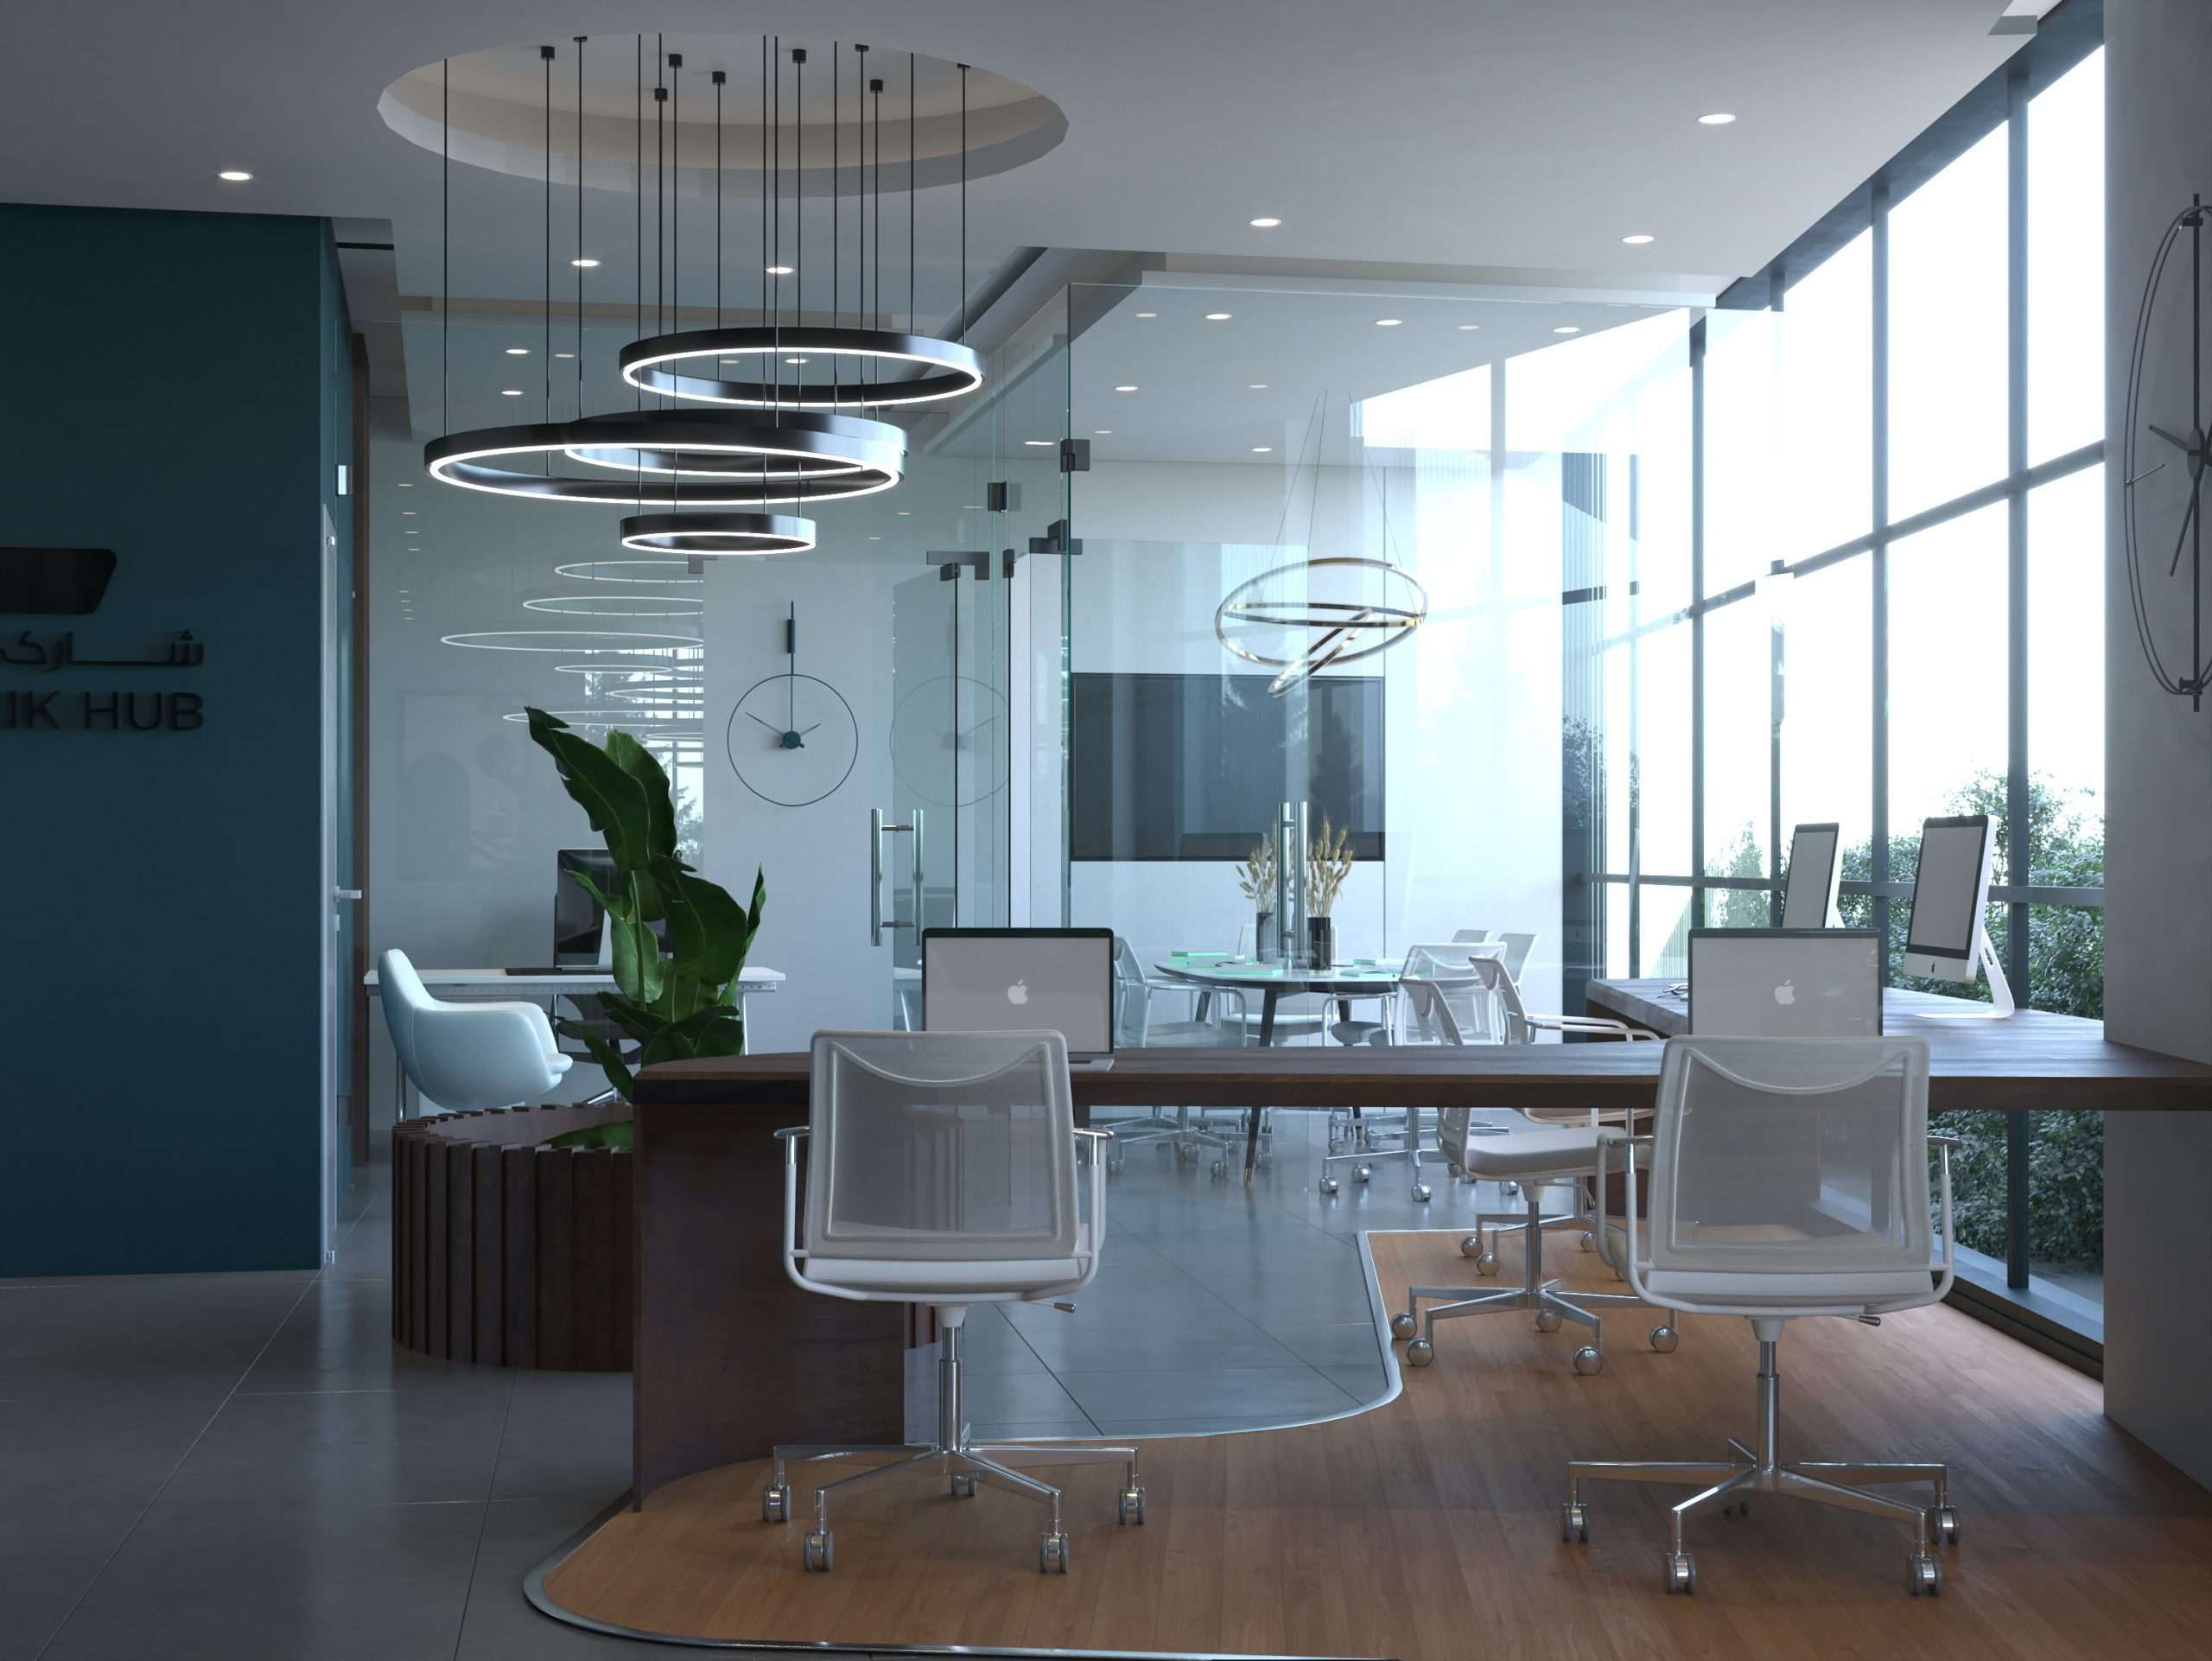 MEETING ROOM - WINDOW -  CHAIRS - TABLES